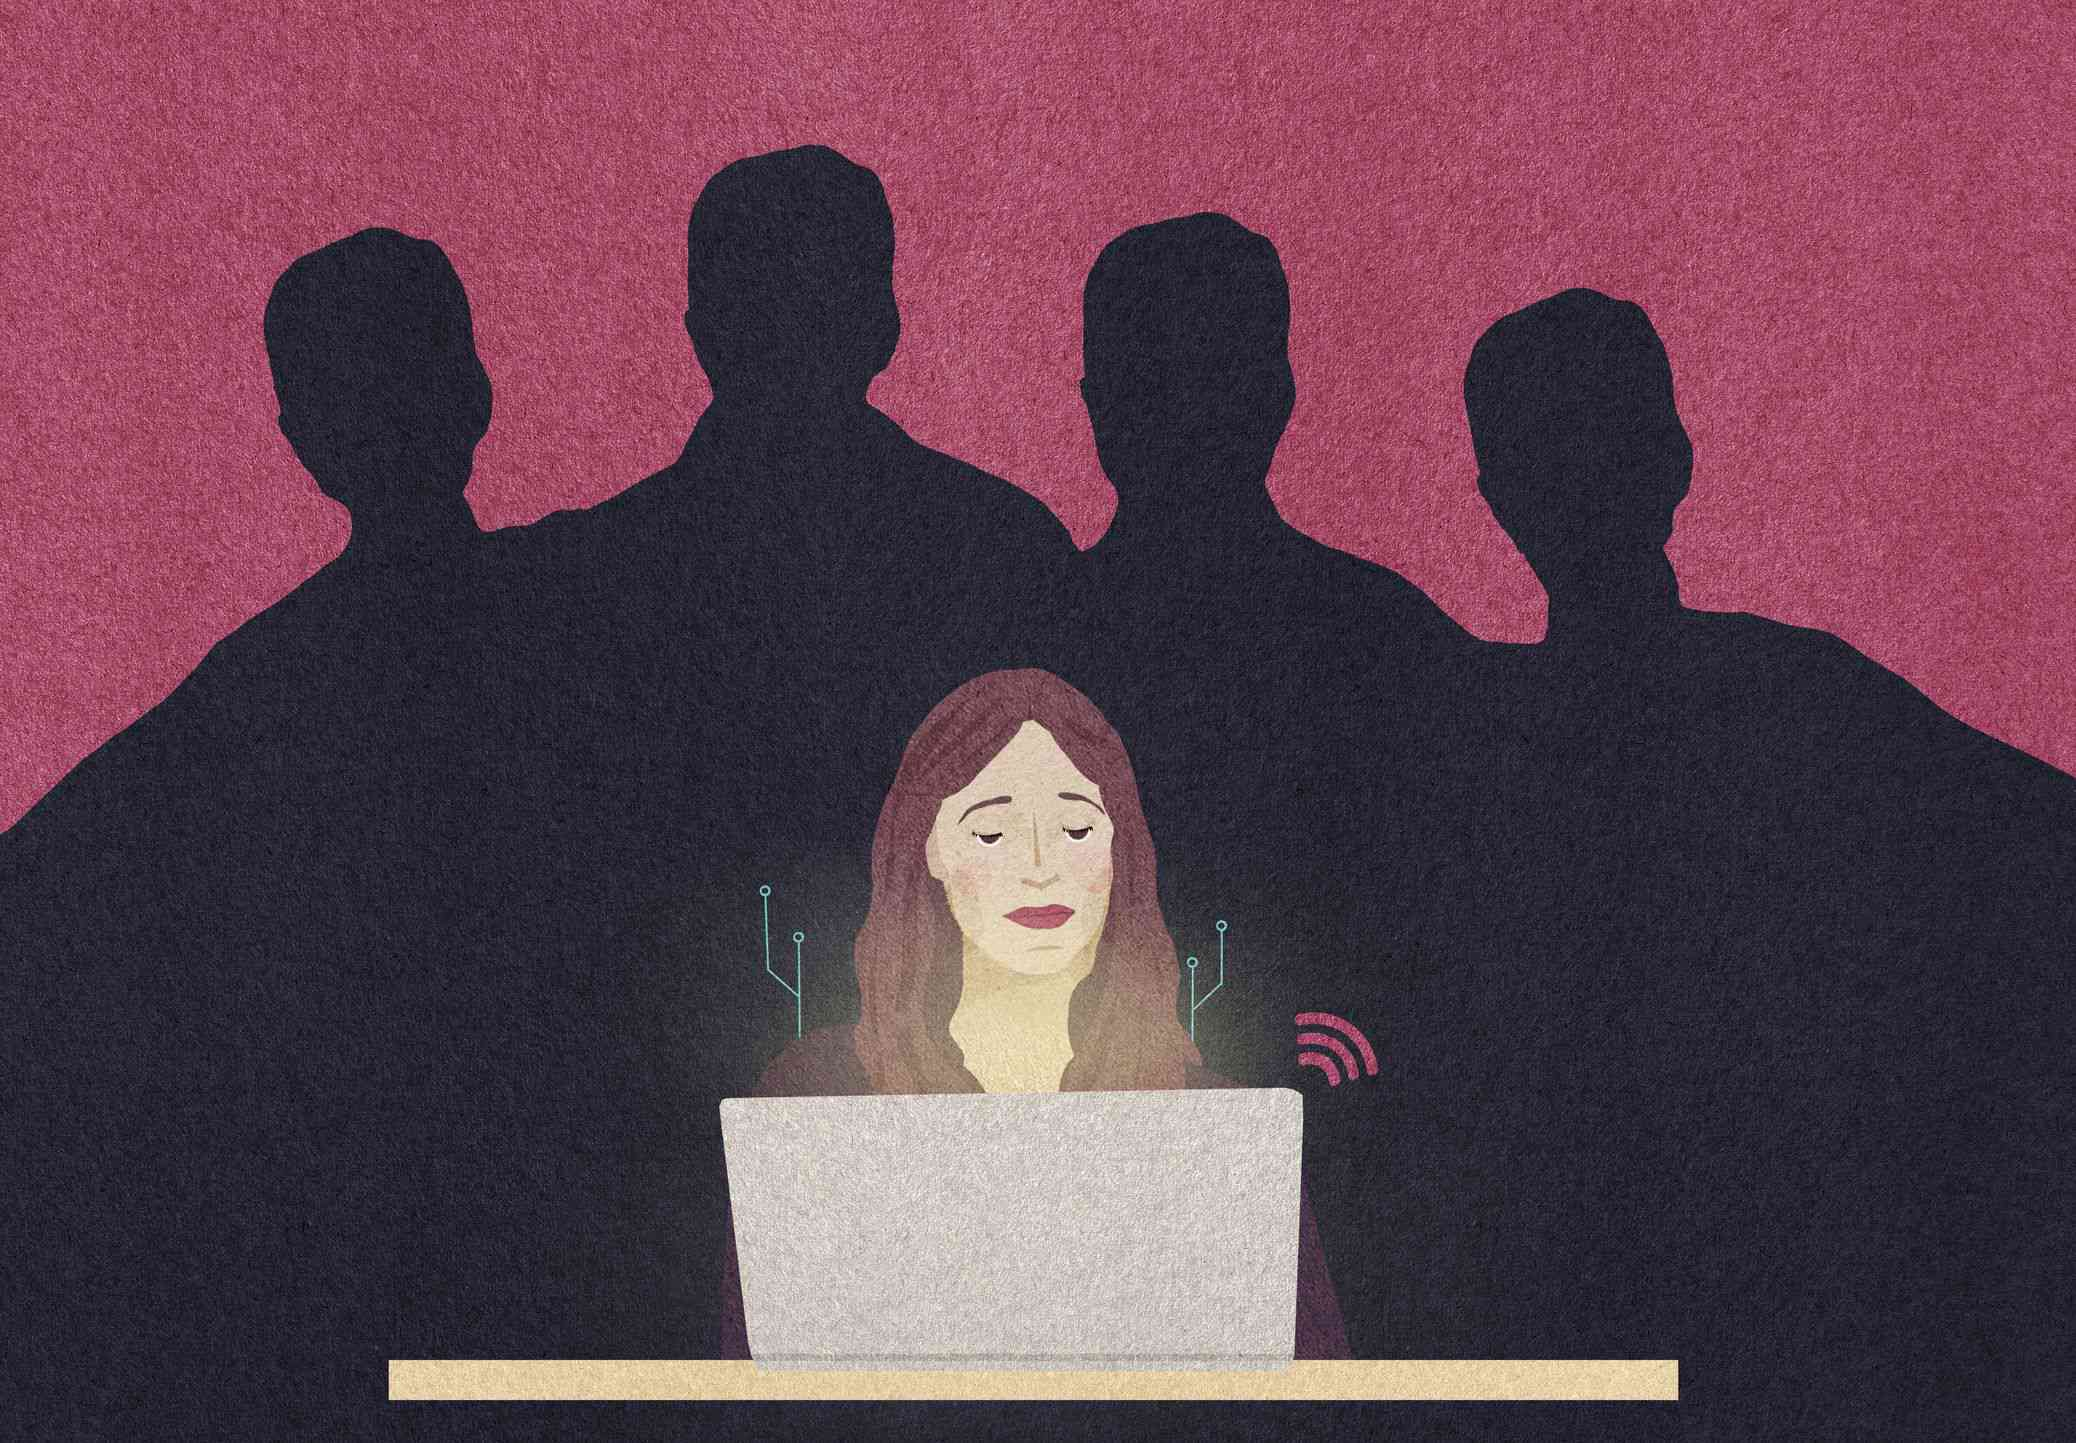 Graphic of woman using computer with shadowy figures behind her